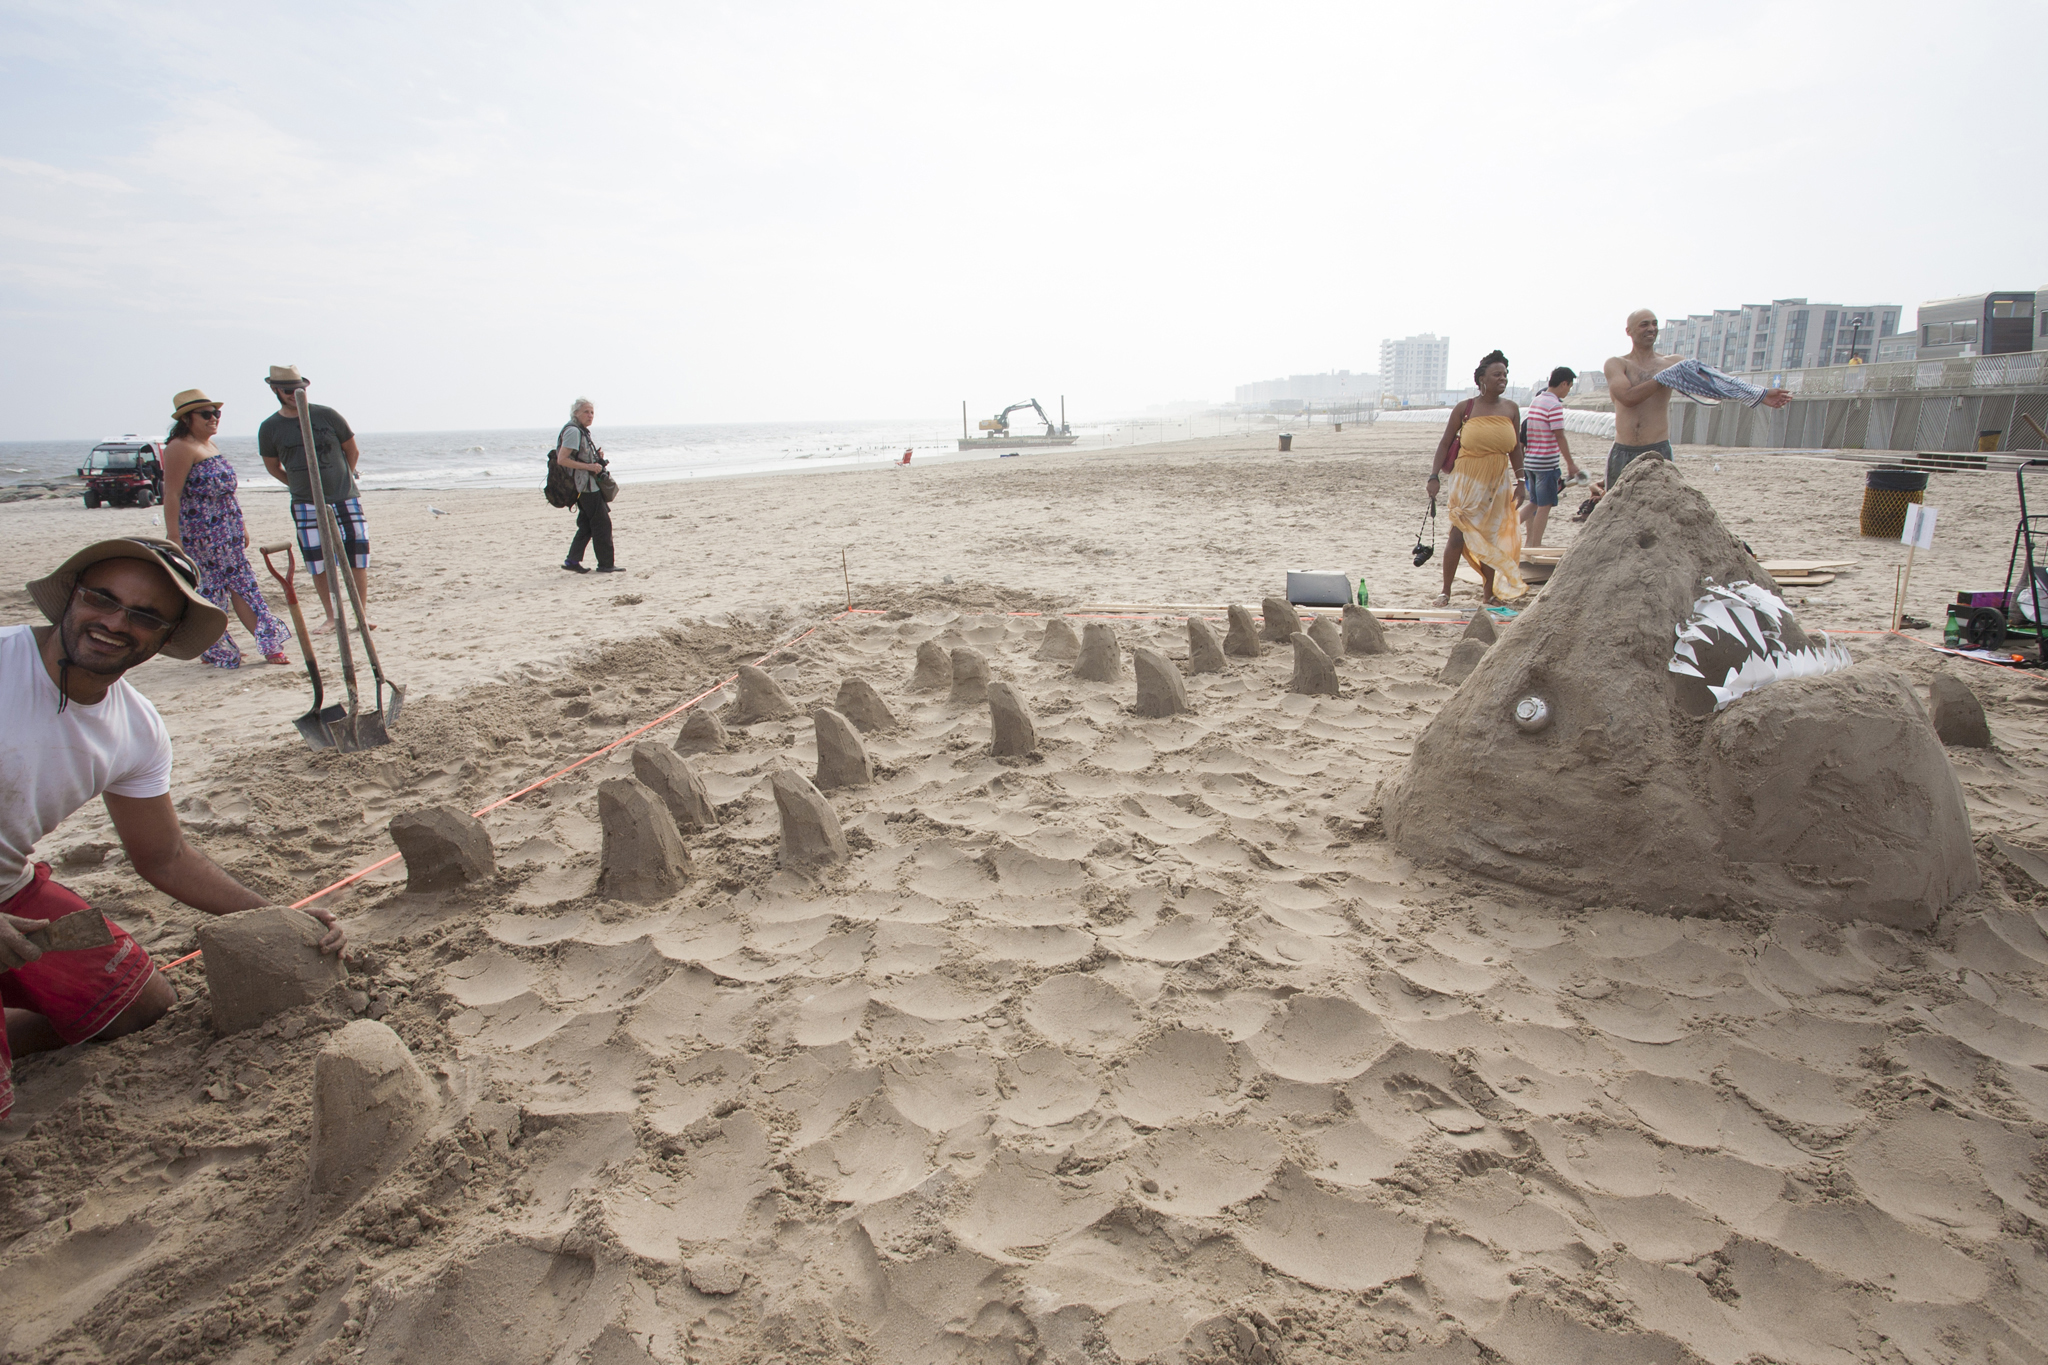 Second Annual Creative Time Sandcastle Competition